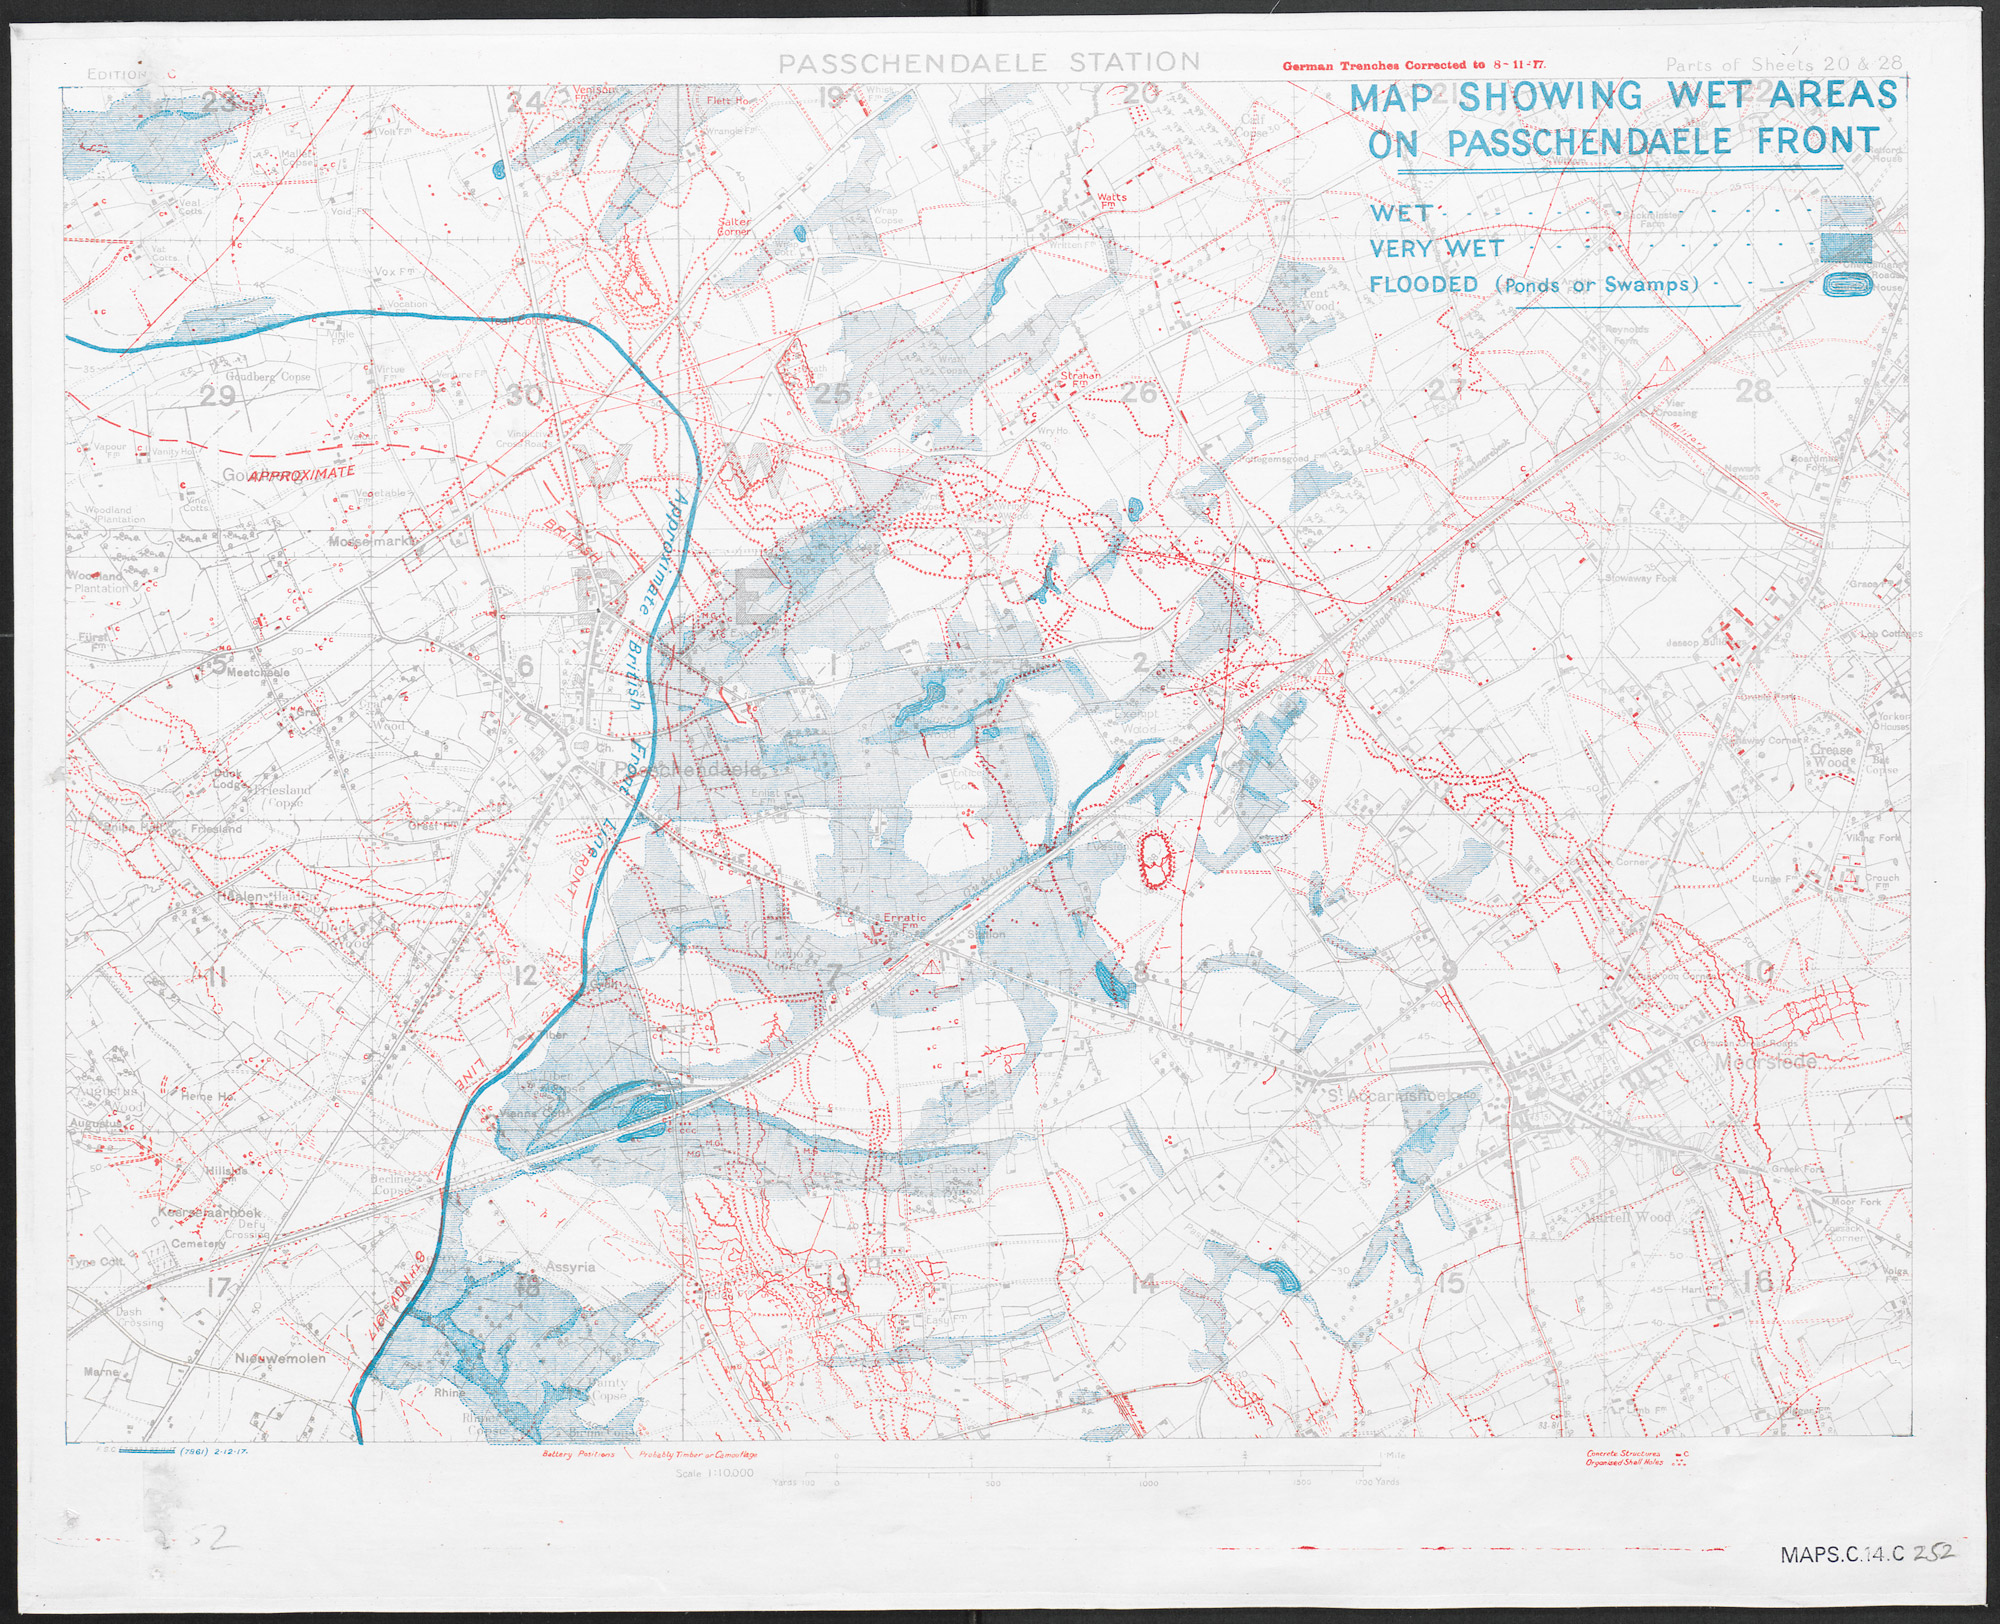 Map showing the Allied front line at the Ypres Salient on 2 December 1917, weeks after the end of the Battle of Passchendaele. The blue shaded areas mark the wet and waterlogged areas facing the Front.